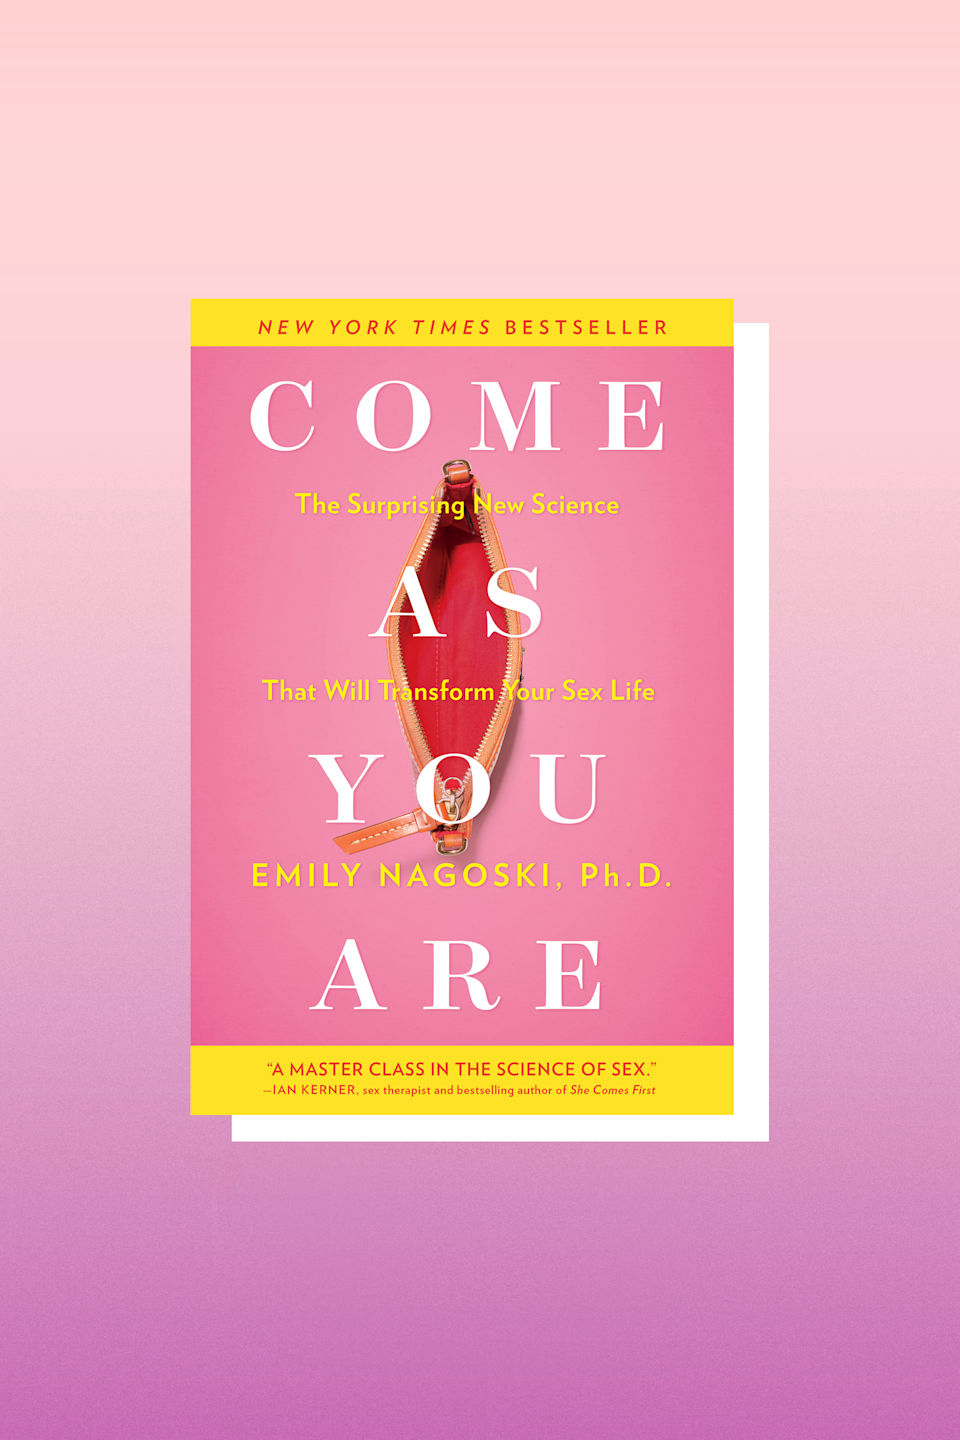 """You might not be ready to <a href=""""https://www.refinery29.com/en-gb/2020/06/9885321/coronavirus-sex-stories"""" rel=""""nofollow noopener"""" target=""""_blank"""" data-ylk=""""slk:consider sex with a new partner"""" class=""""link rapid-noclick-resp"""">consider sex with a new partner</a>, but when you are, this book is filled with smart advice about <a href=""""https://www.refinery29.com/en-gb/2020/04/9666039/can-you-have-sex-during-coronavirus"""" rel=""""nofollow noopener"""" target=""""_blank"""" data-ylk=""""slk:reclaiming your sexuality"""" class=""""link rapid-noclick-resp"""">reclaiming your sexuality</a> and asking for what you want in bed. A lot of the information is based in psychology, so if you're not into heady self-help books, this might seem more accessible.<br><br>""""Emotions are tunnels. You have to go all the way through the darkness to get to the light at the end."""" – <em>Come As You Are</em>"""